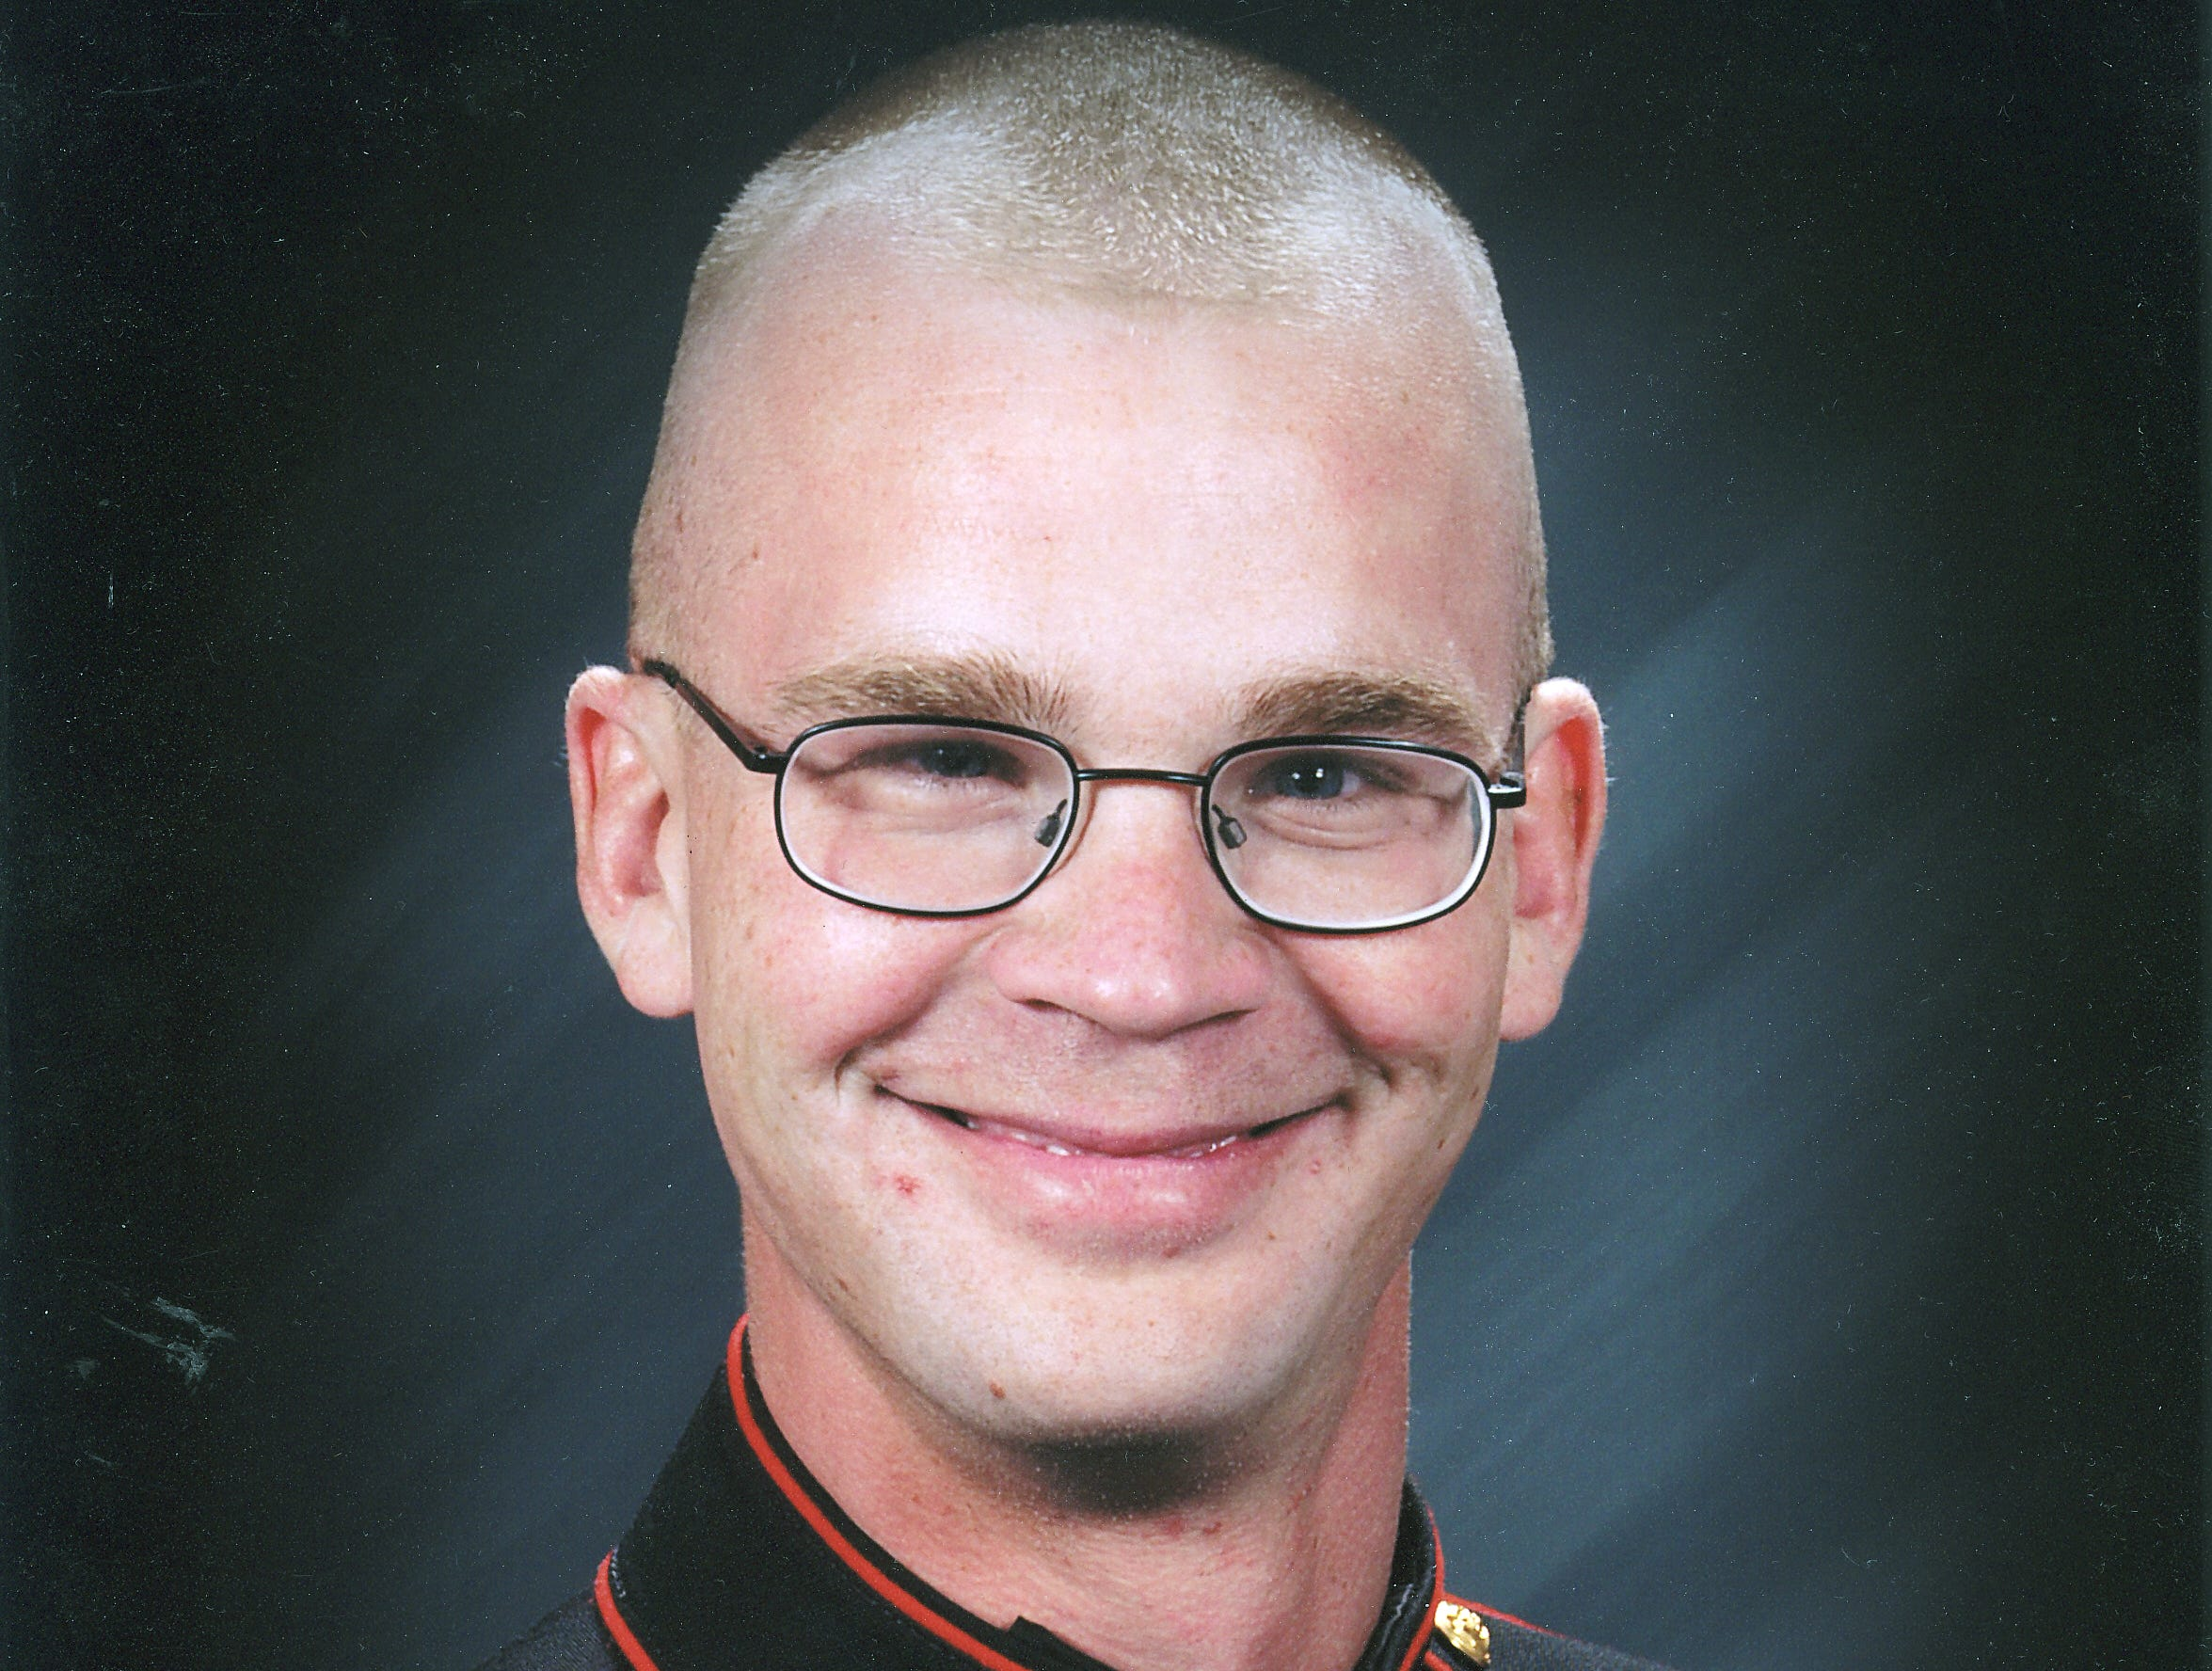 Marine Sgt. Christopher M. Wrinkle, 29, a Dallastown Area High School graduate, died July 31, 2011 in a barracks fire in Herat providence, Afghanistan